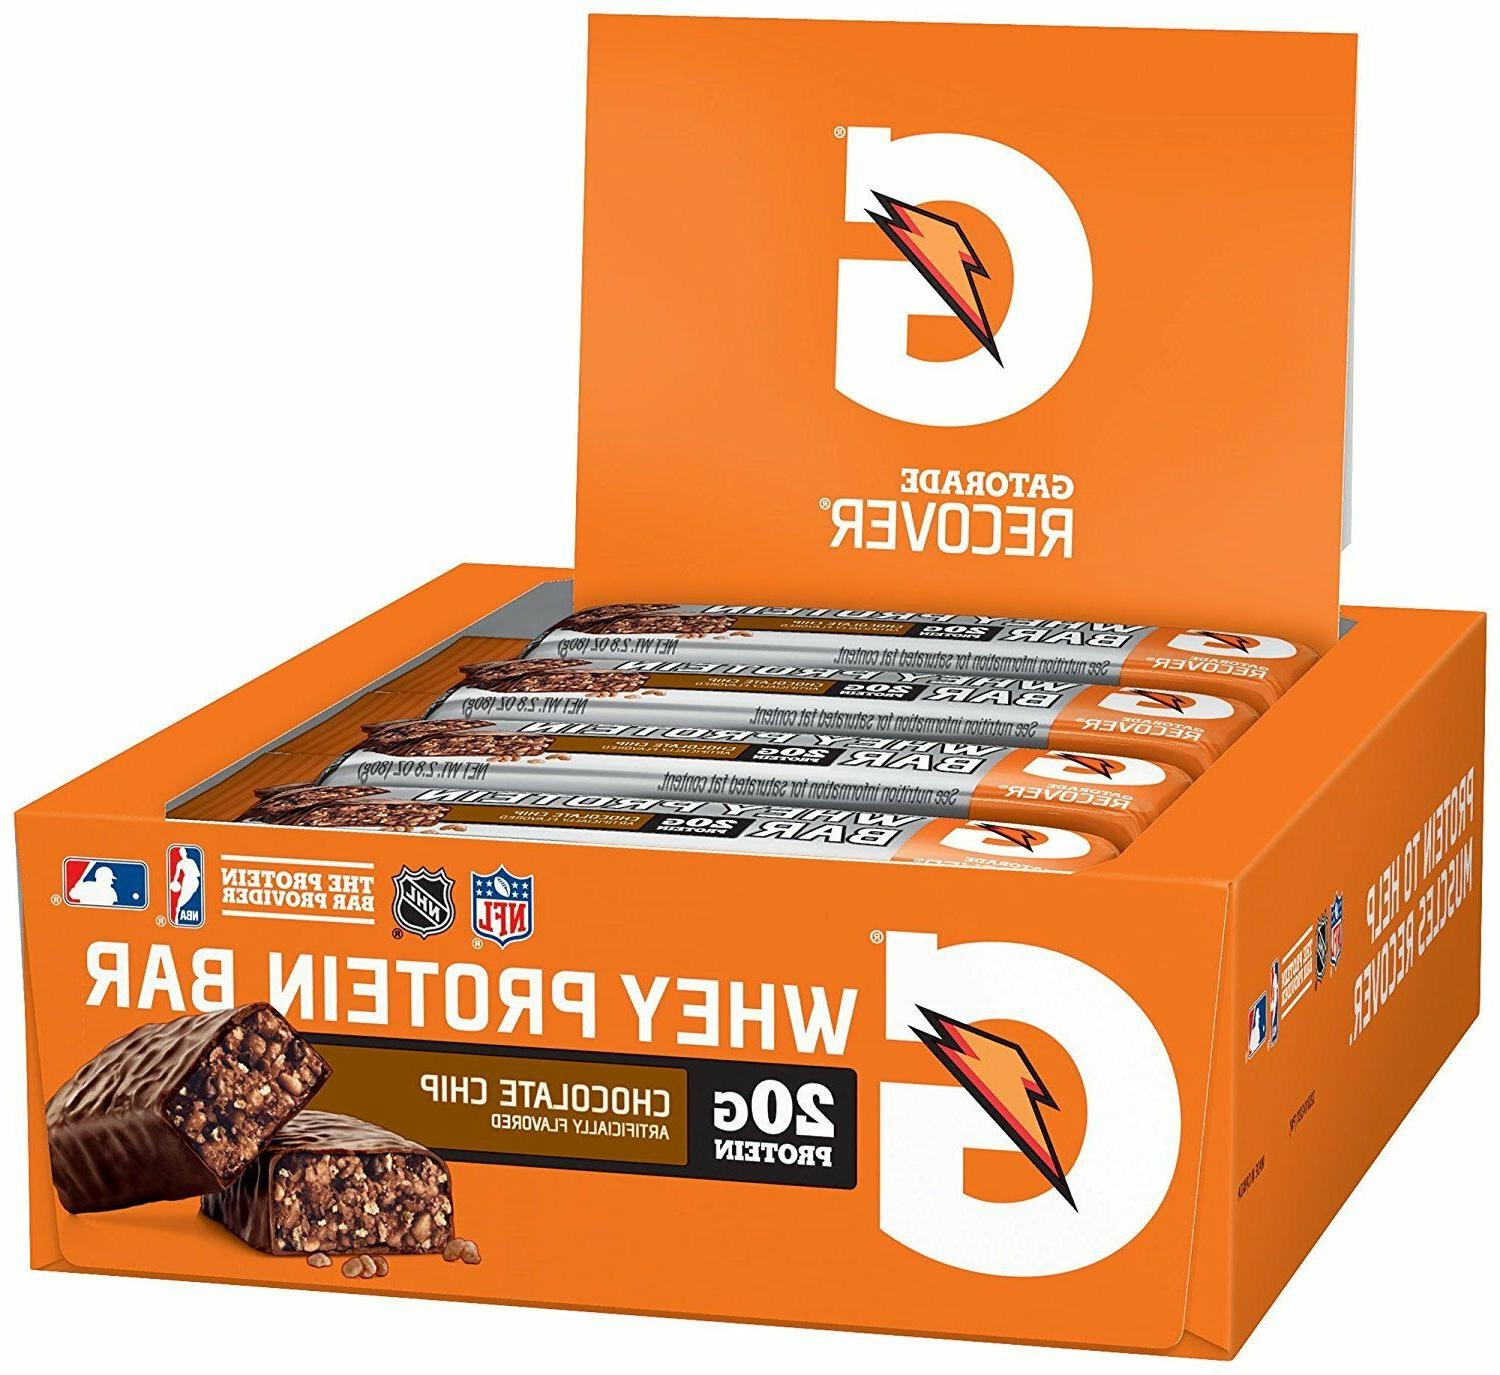 whey protein recovery recover bars 12 pack